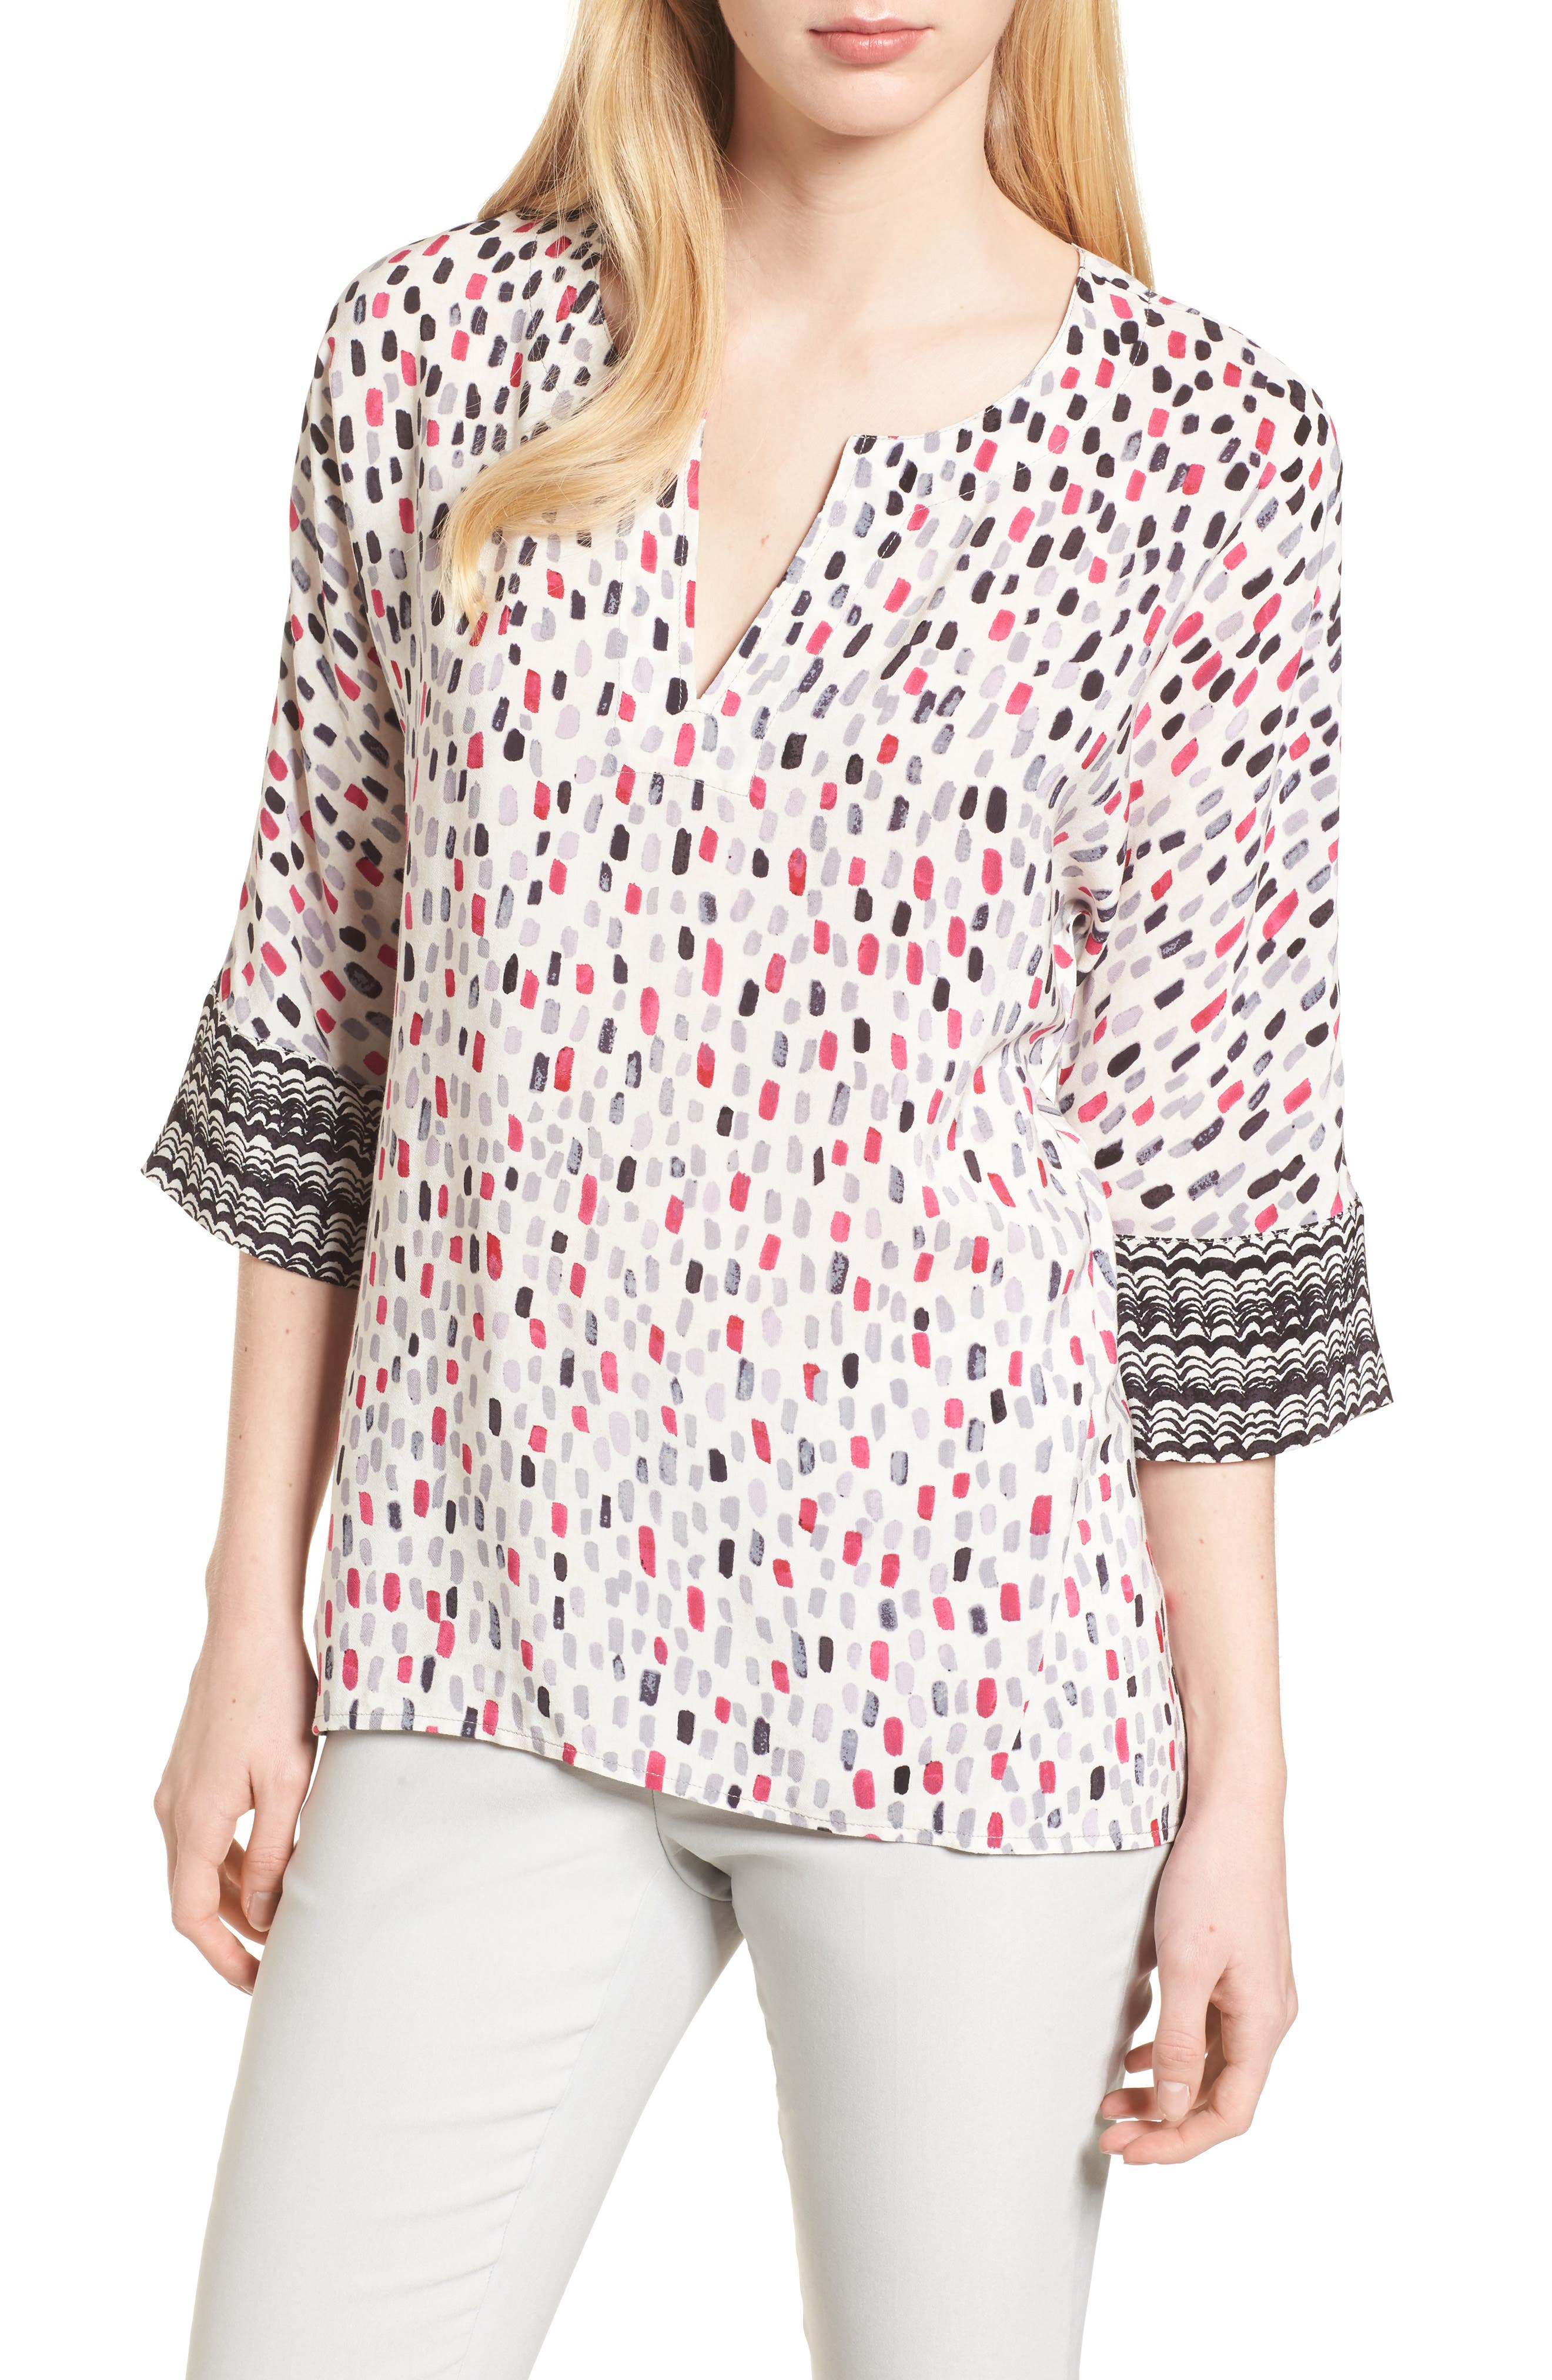 Confetti Top,                         Main,                         color, 690